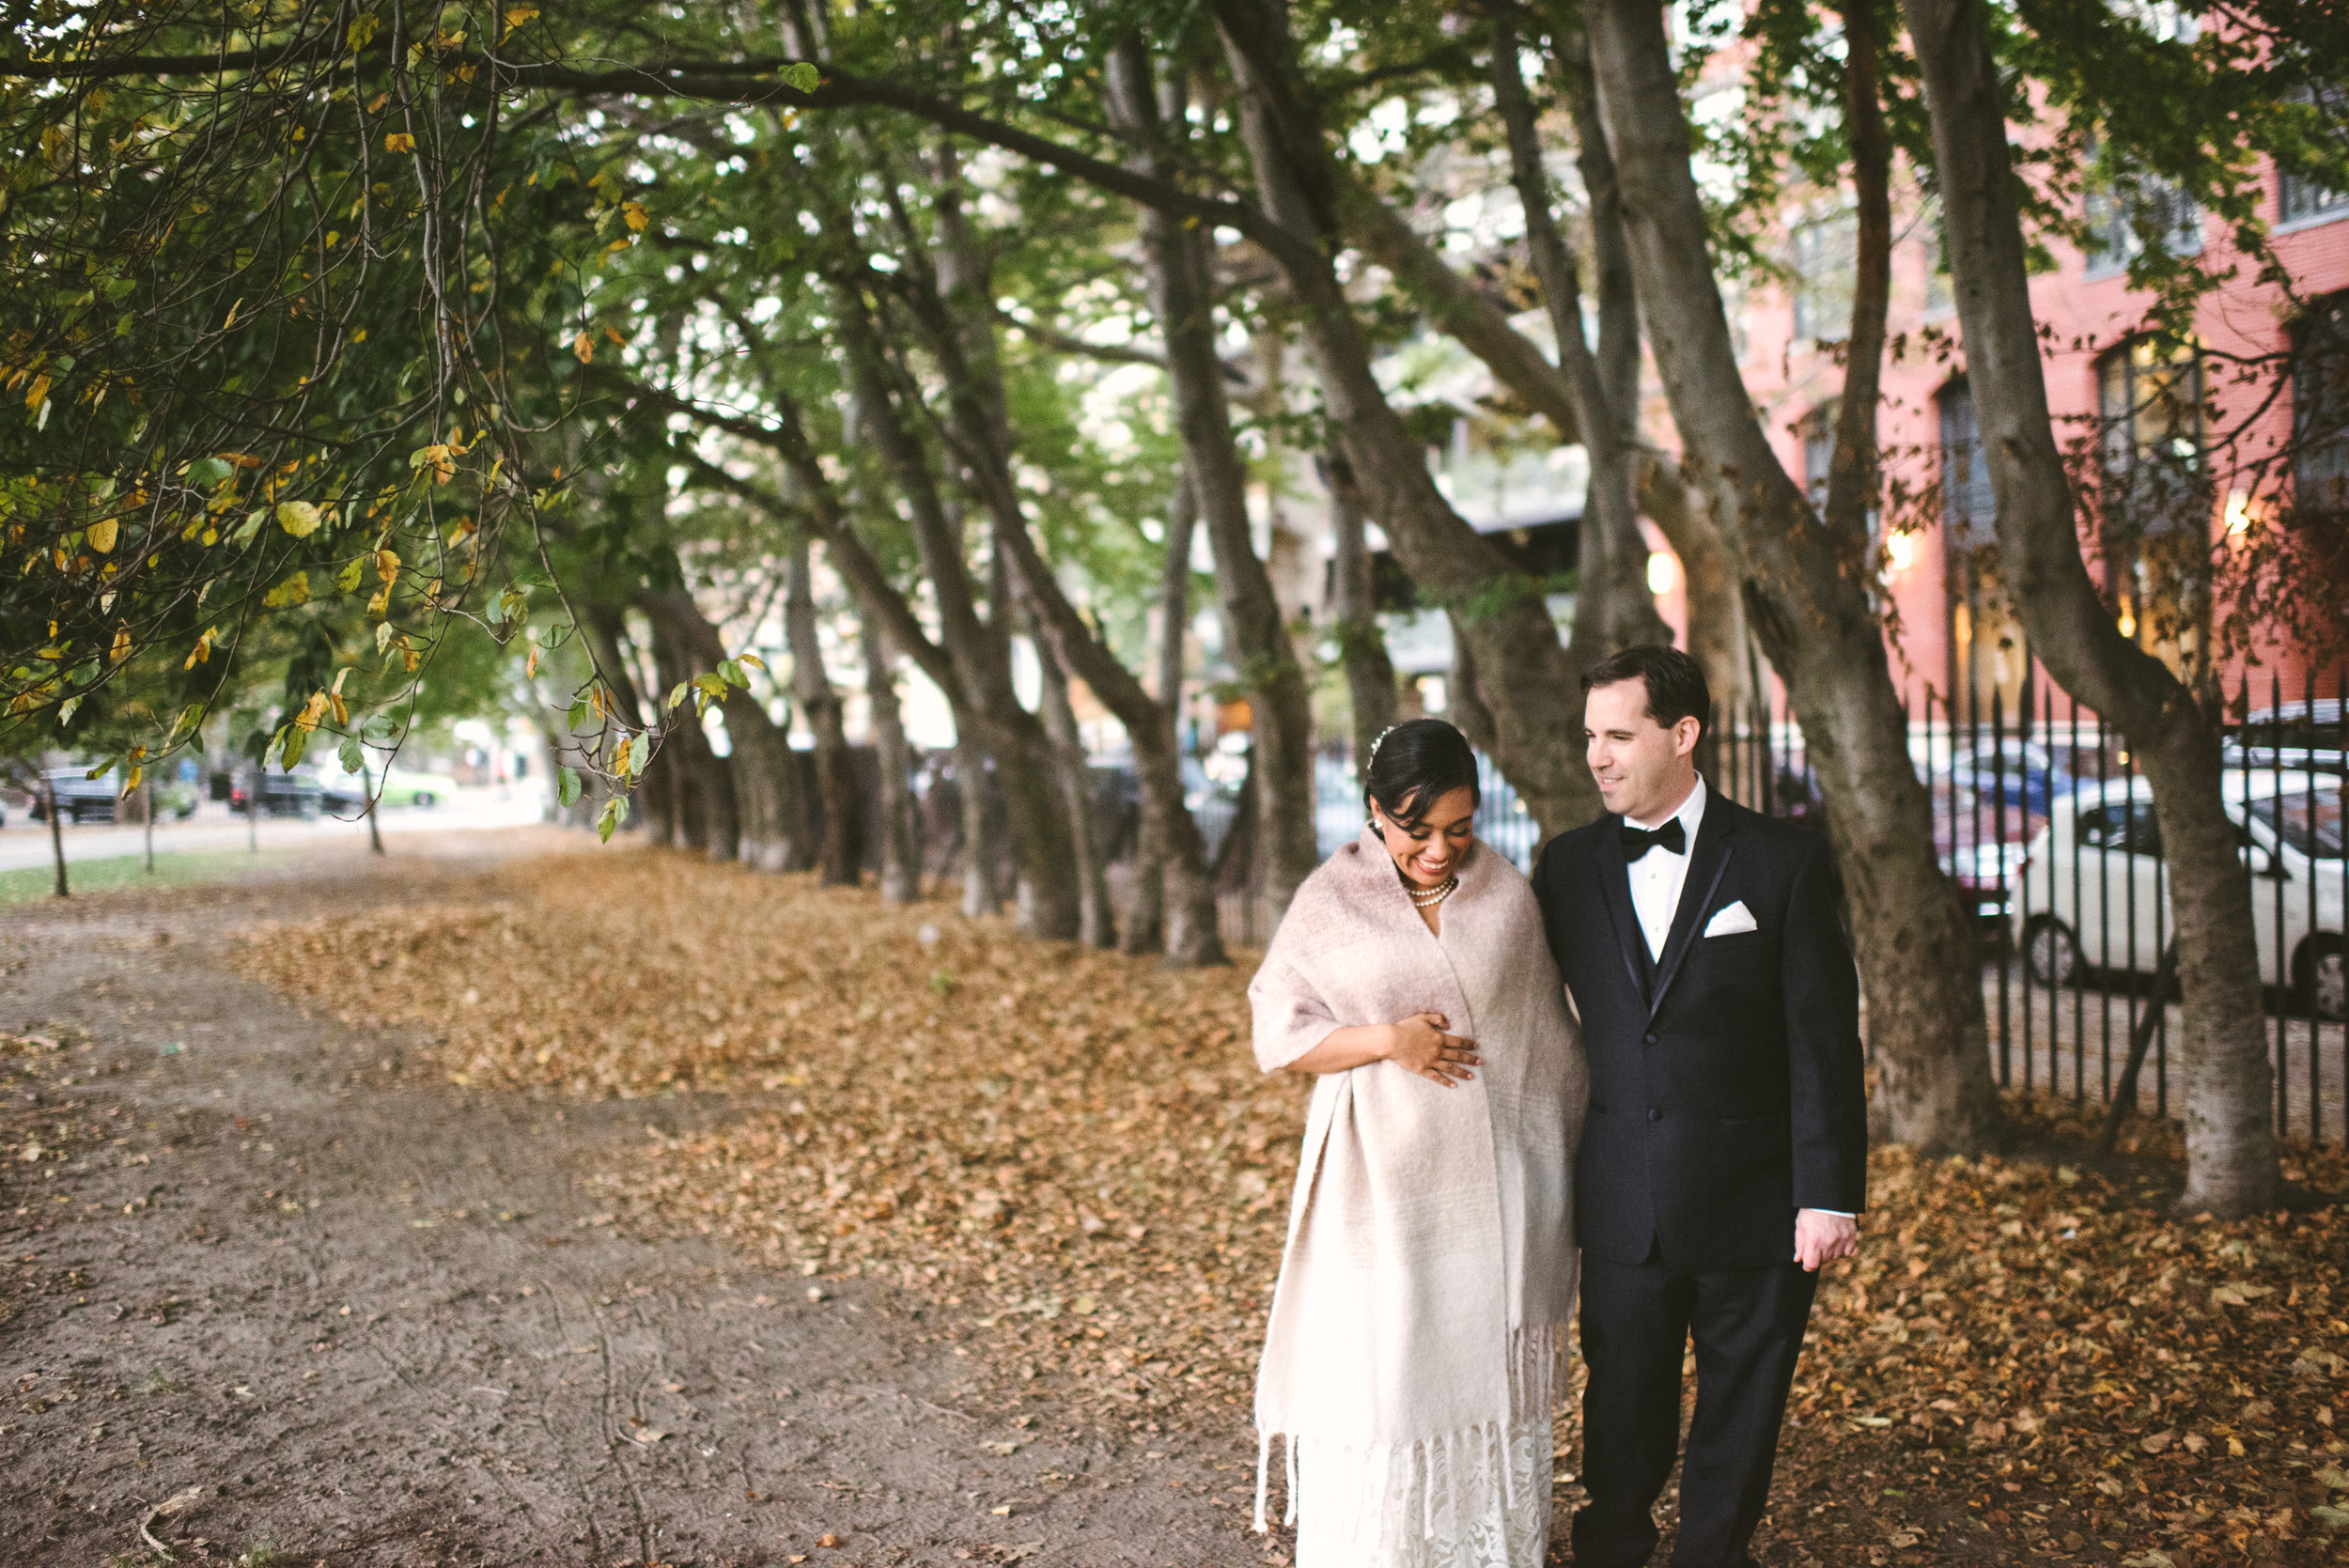 BROOKLYN WINERY WEDDING - TWOTWENTY by CHI-CHI AGBIM-133.jpg